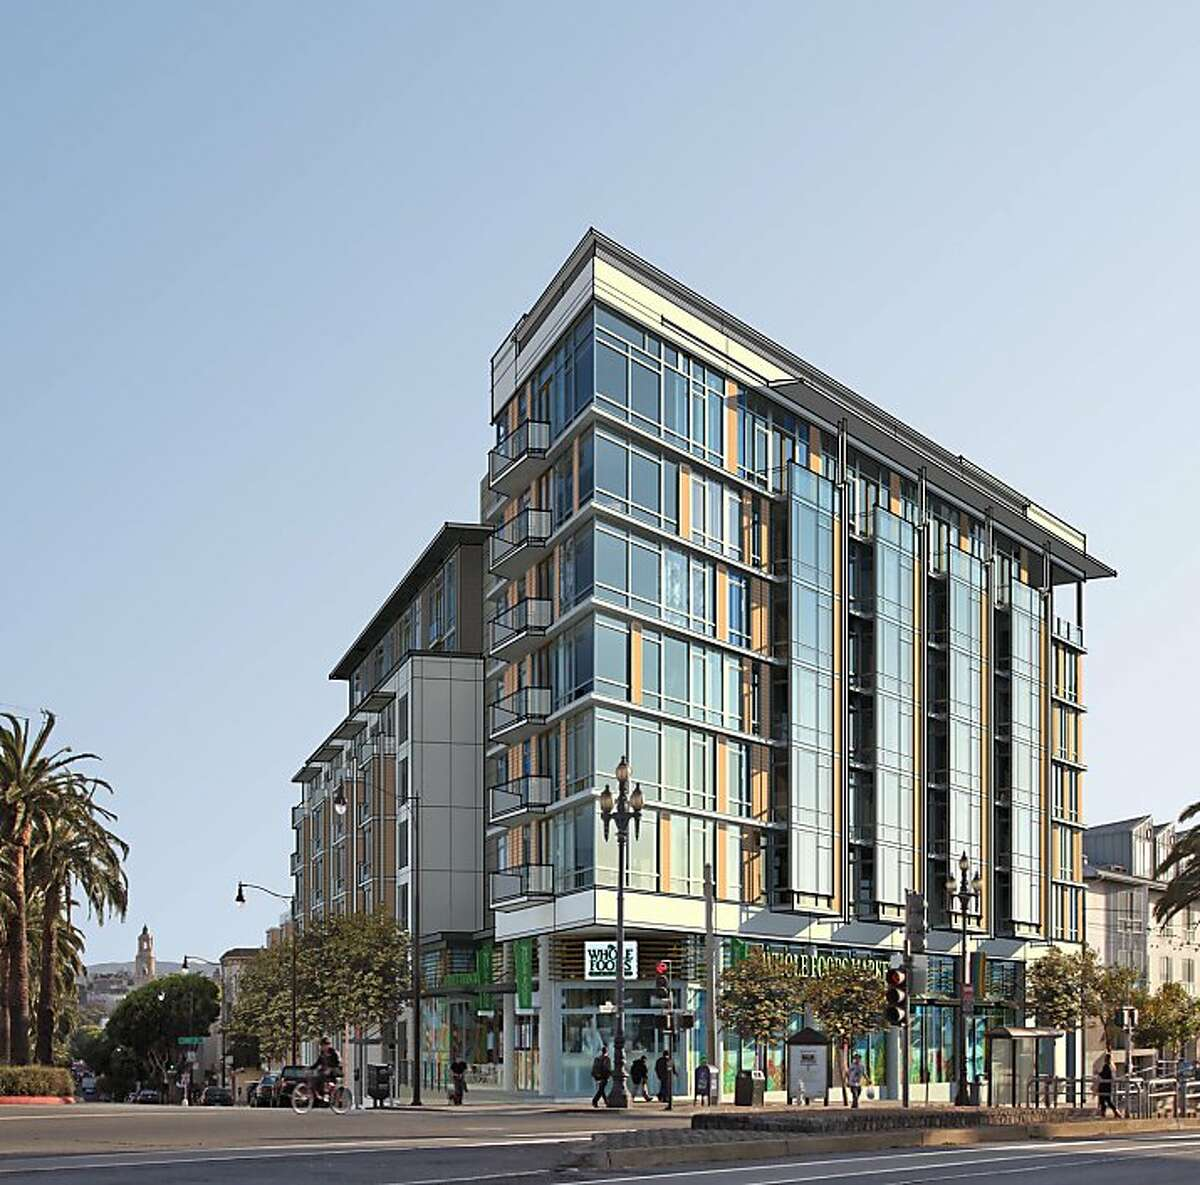 Last week, shoring and excavation work was being conducted at Market and Dolores streets, where the S&C Ford once stood. In its place, by September of next year, will be an 82-unit residential complex anchored by a 30,000 square-foot Whole Foods.